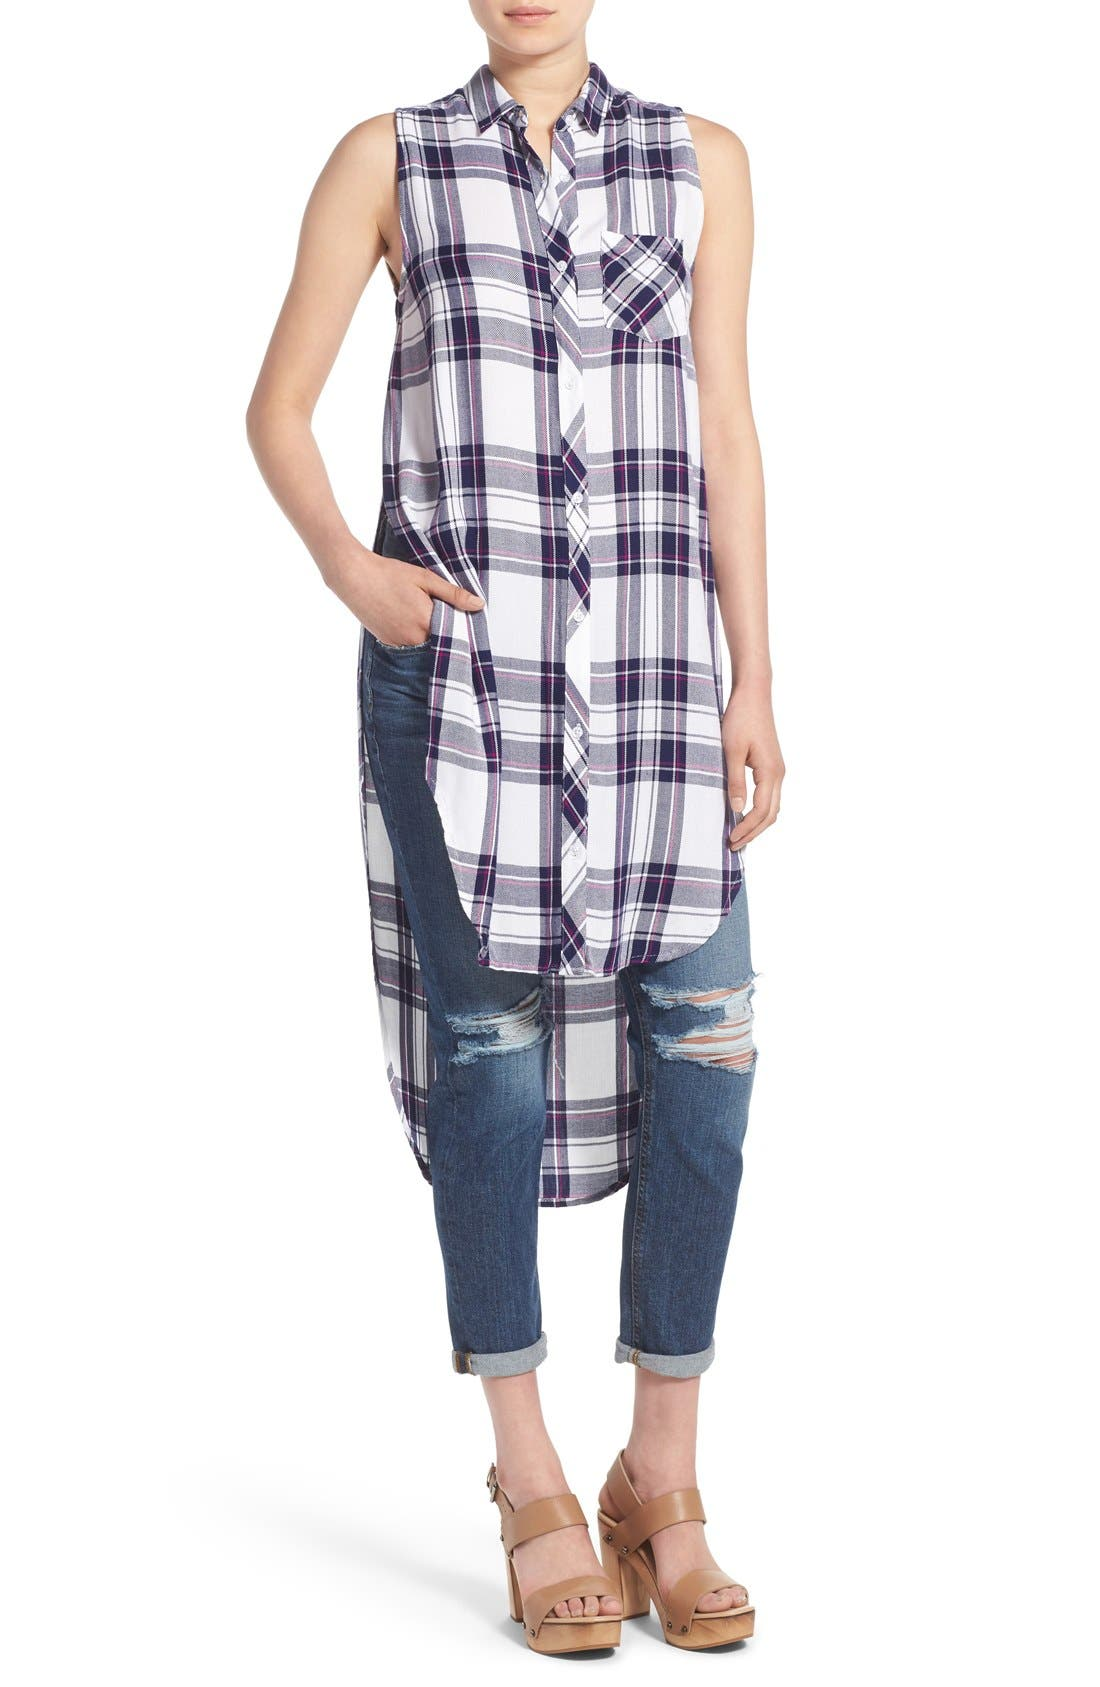 'Jordyn' Sleeveless Plaid Tunic,                         Main,                         color, White/ Navy/ Orchid